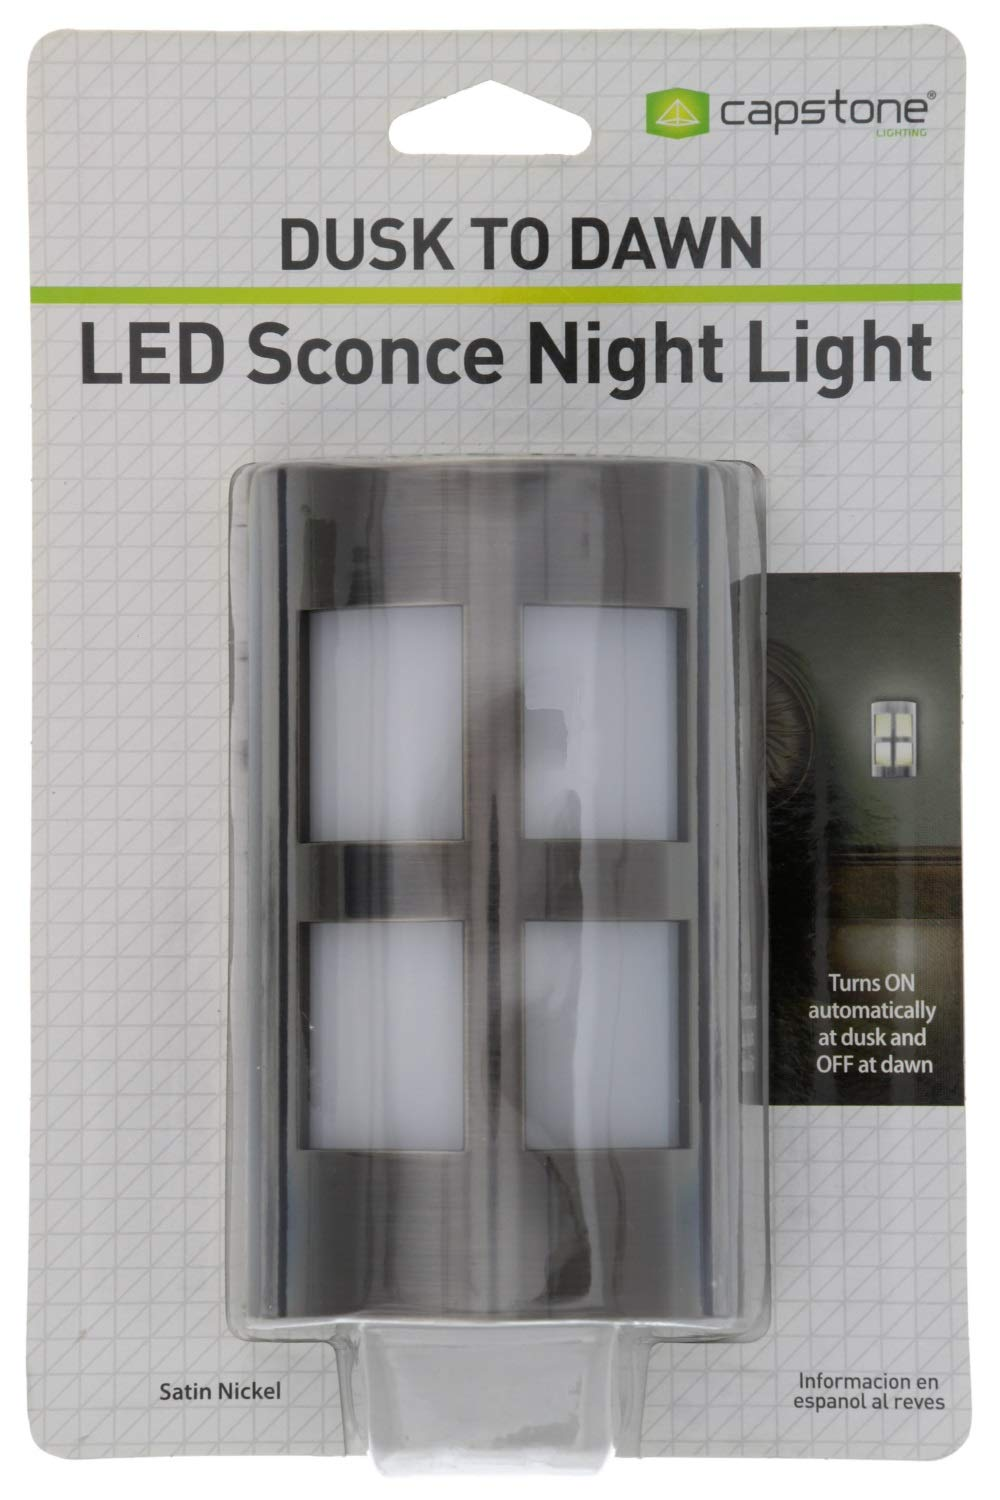 Amazon.com: Capstone Dusk to Dawn LED Plugin Night Light–Automatic Dusk to Dawn Sensor Feature,Decorative Sconce Lights Up Your Home,No Batteries ...